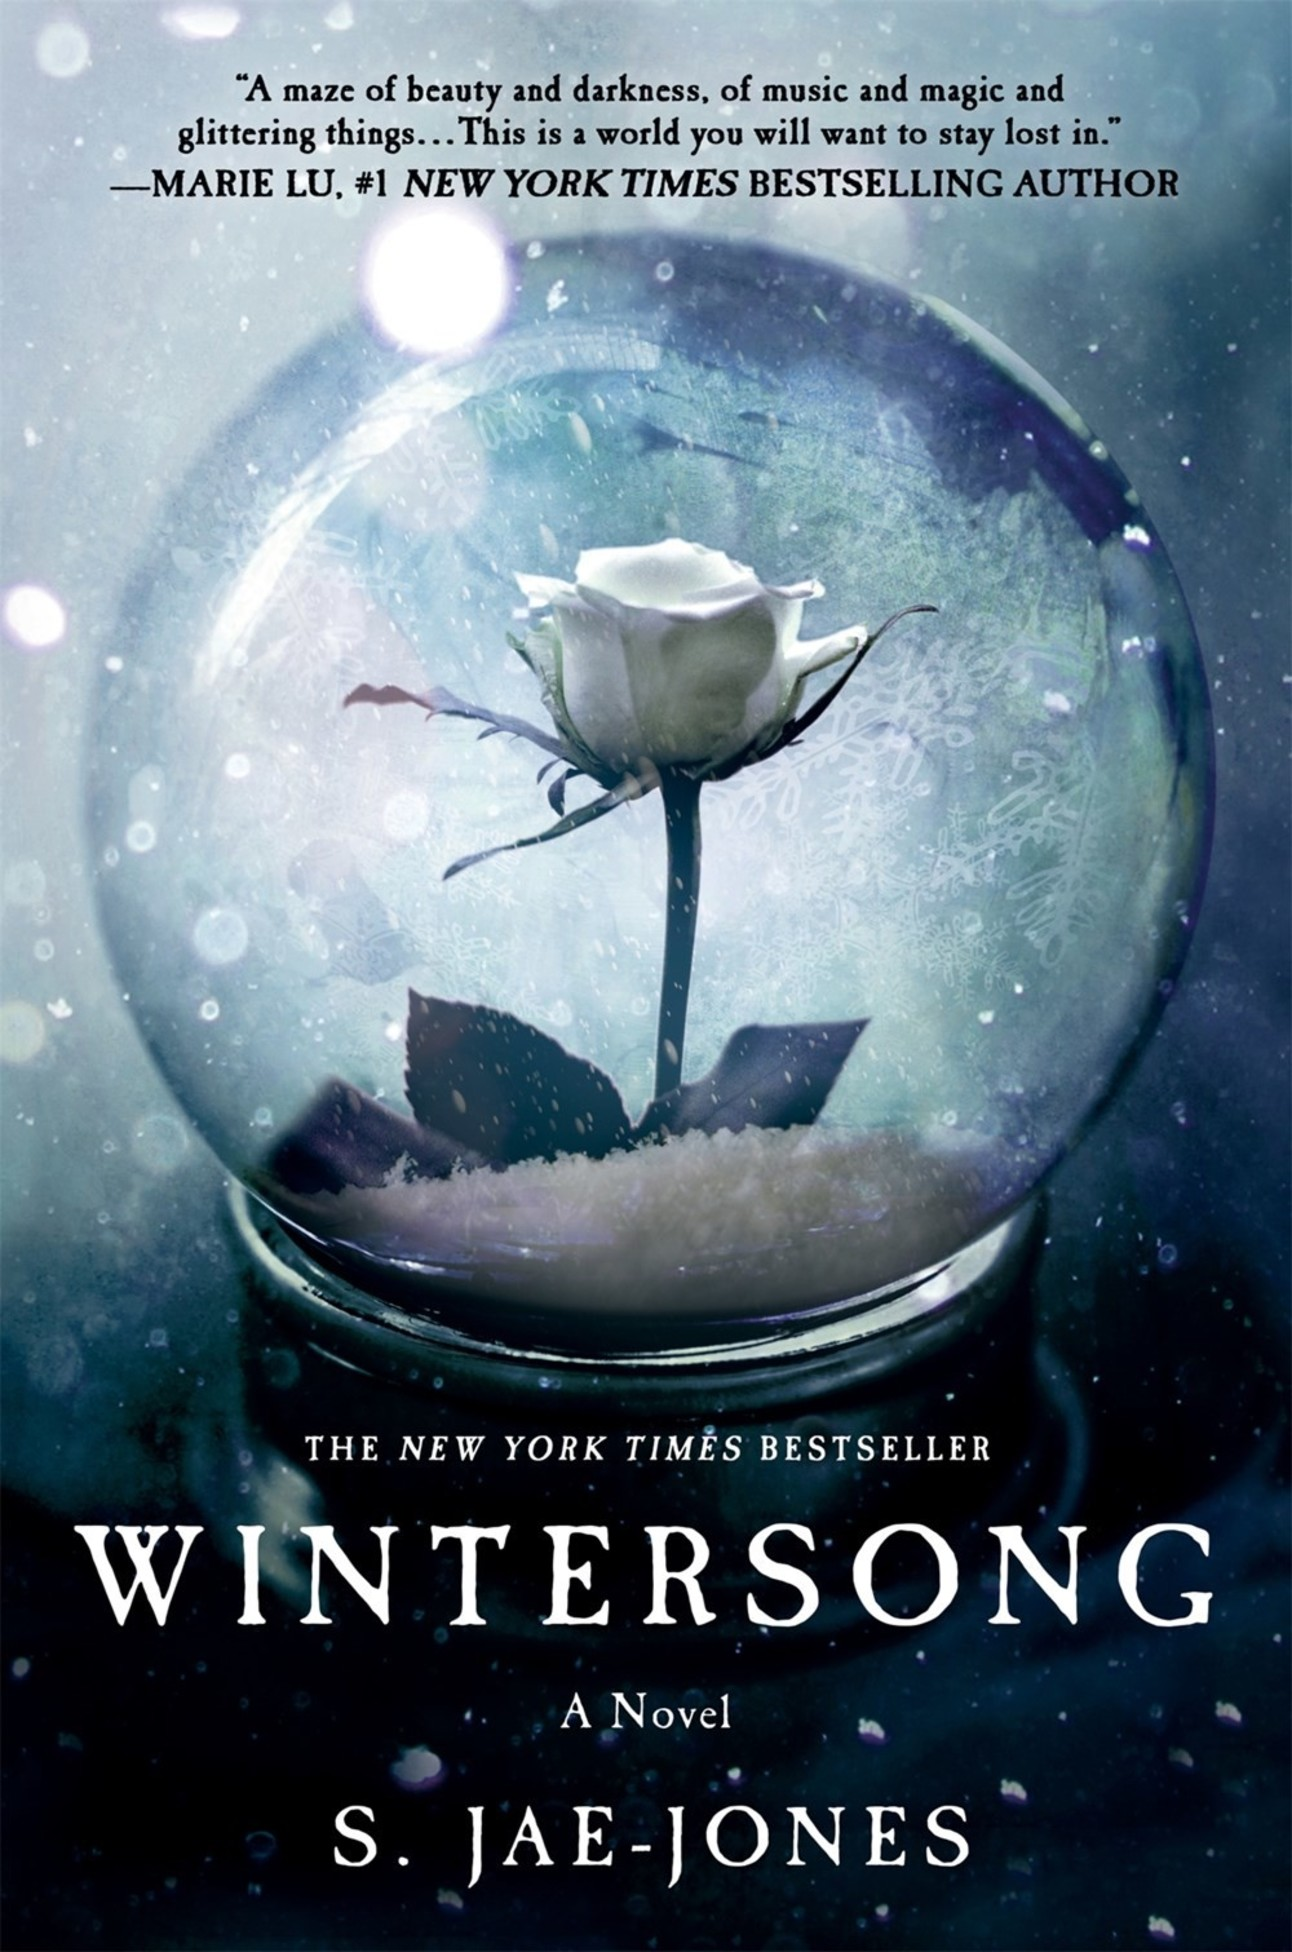 wintersong by s. jae jones